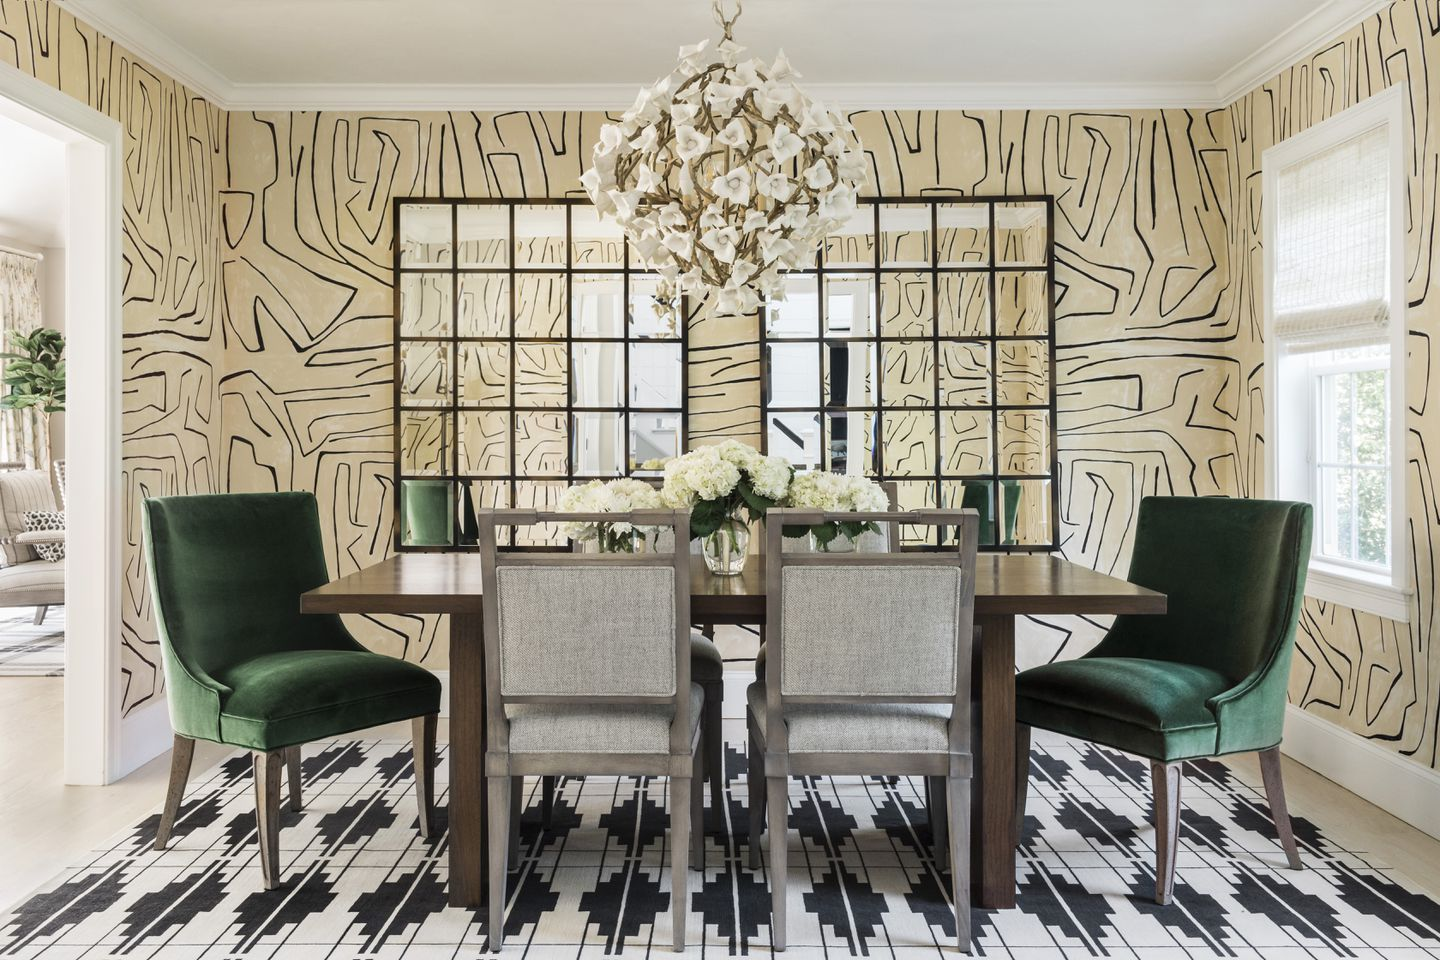 Style Inspiration How To Make A Bold Splash Of Wallpaper Work In Your Room The Boston Globe